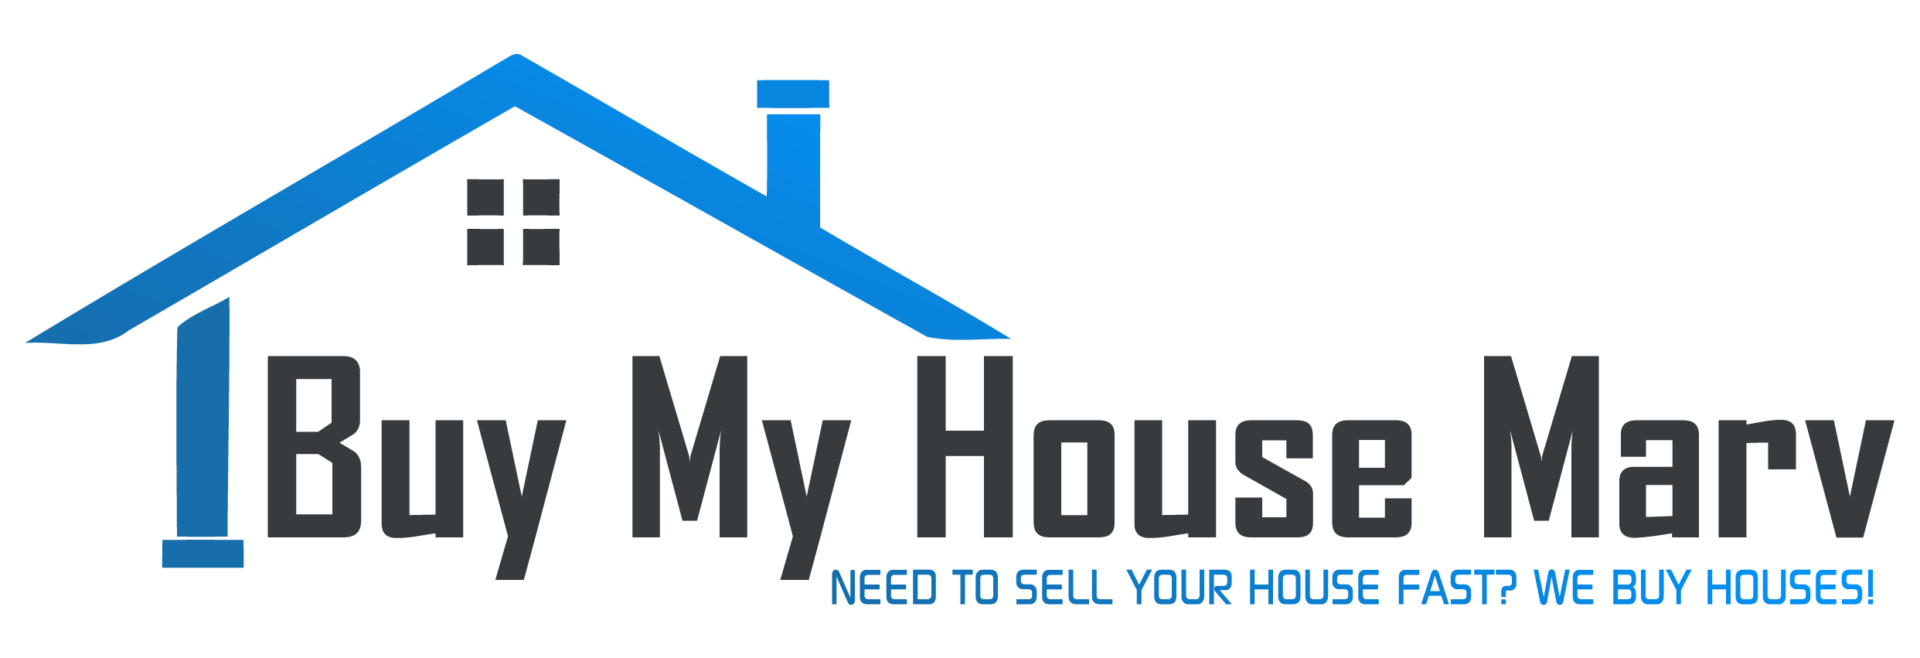 Buy My House Marv logo